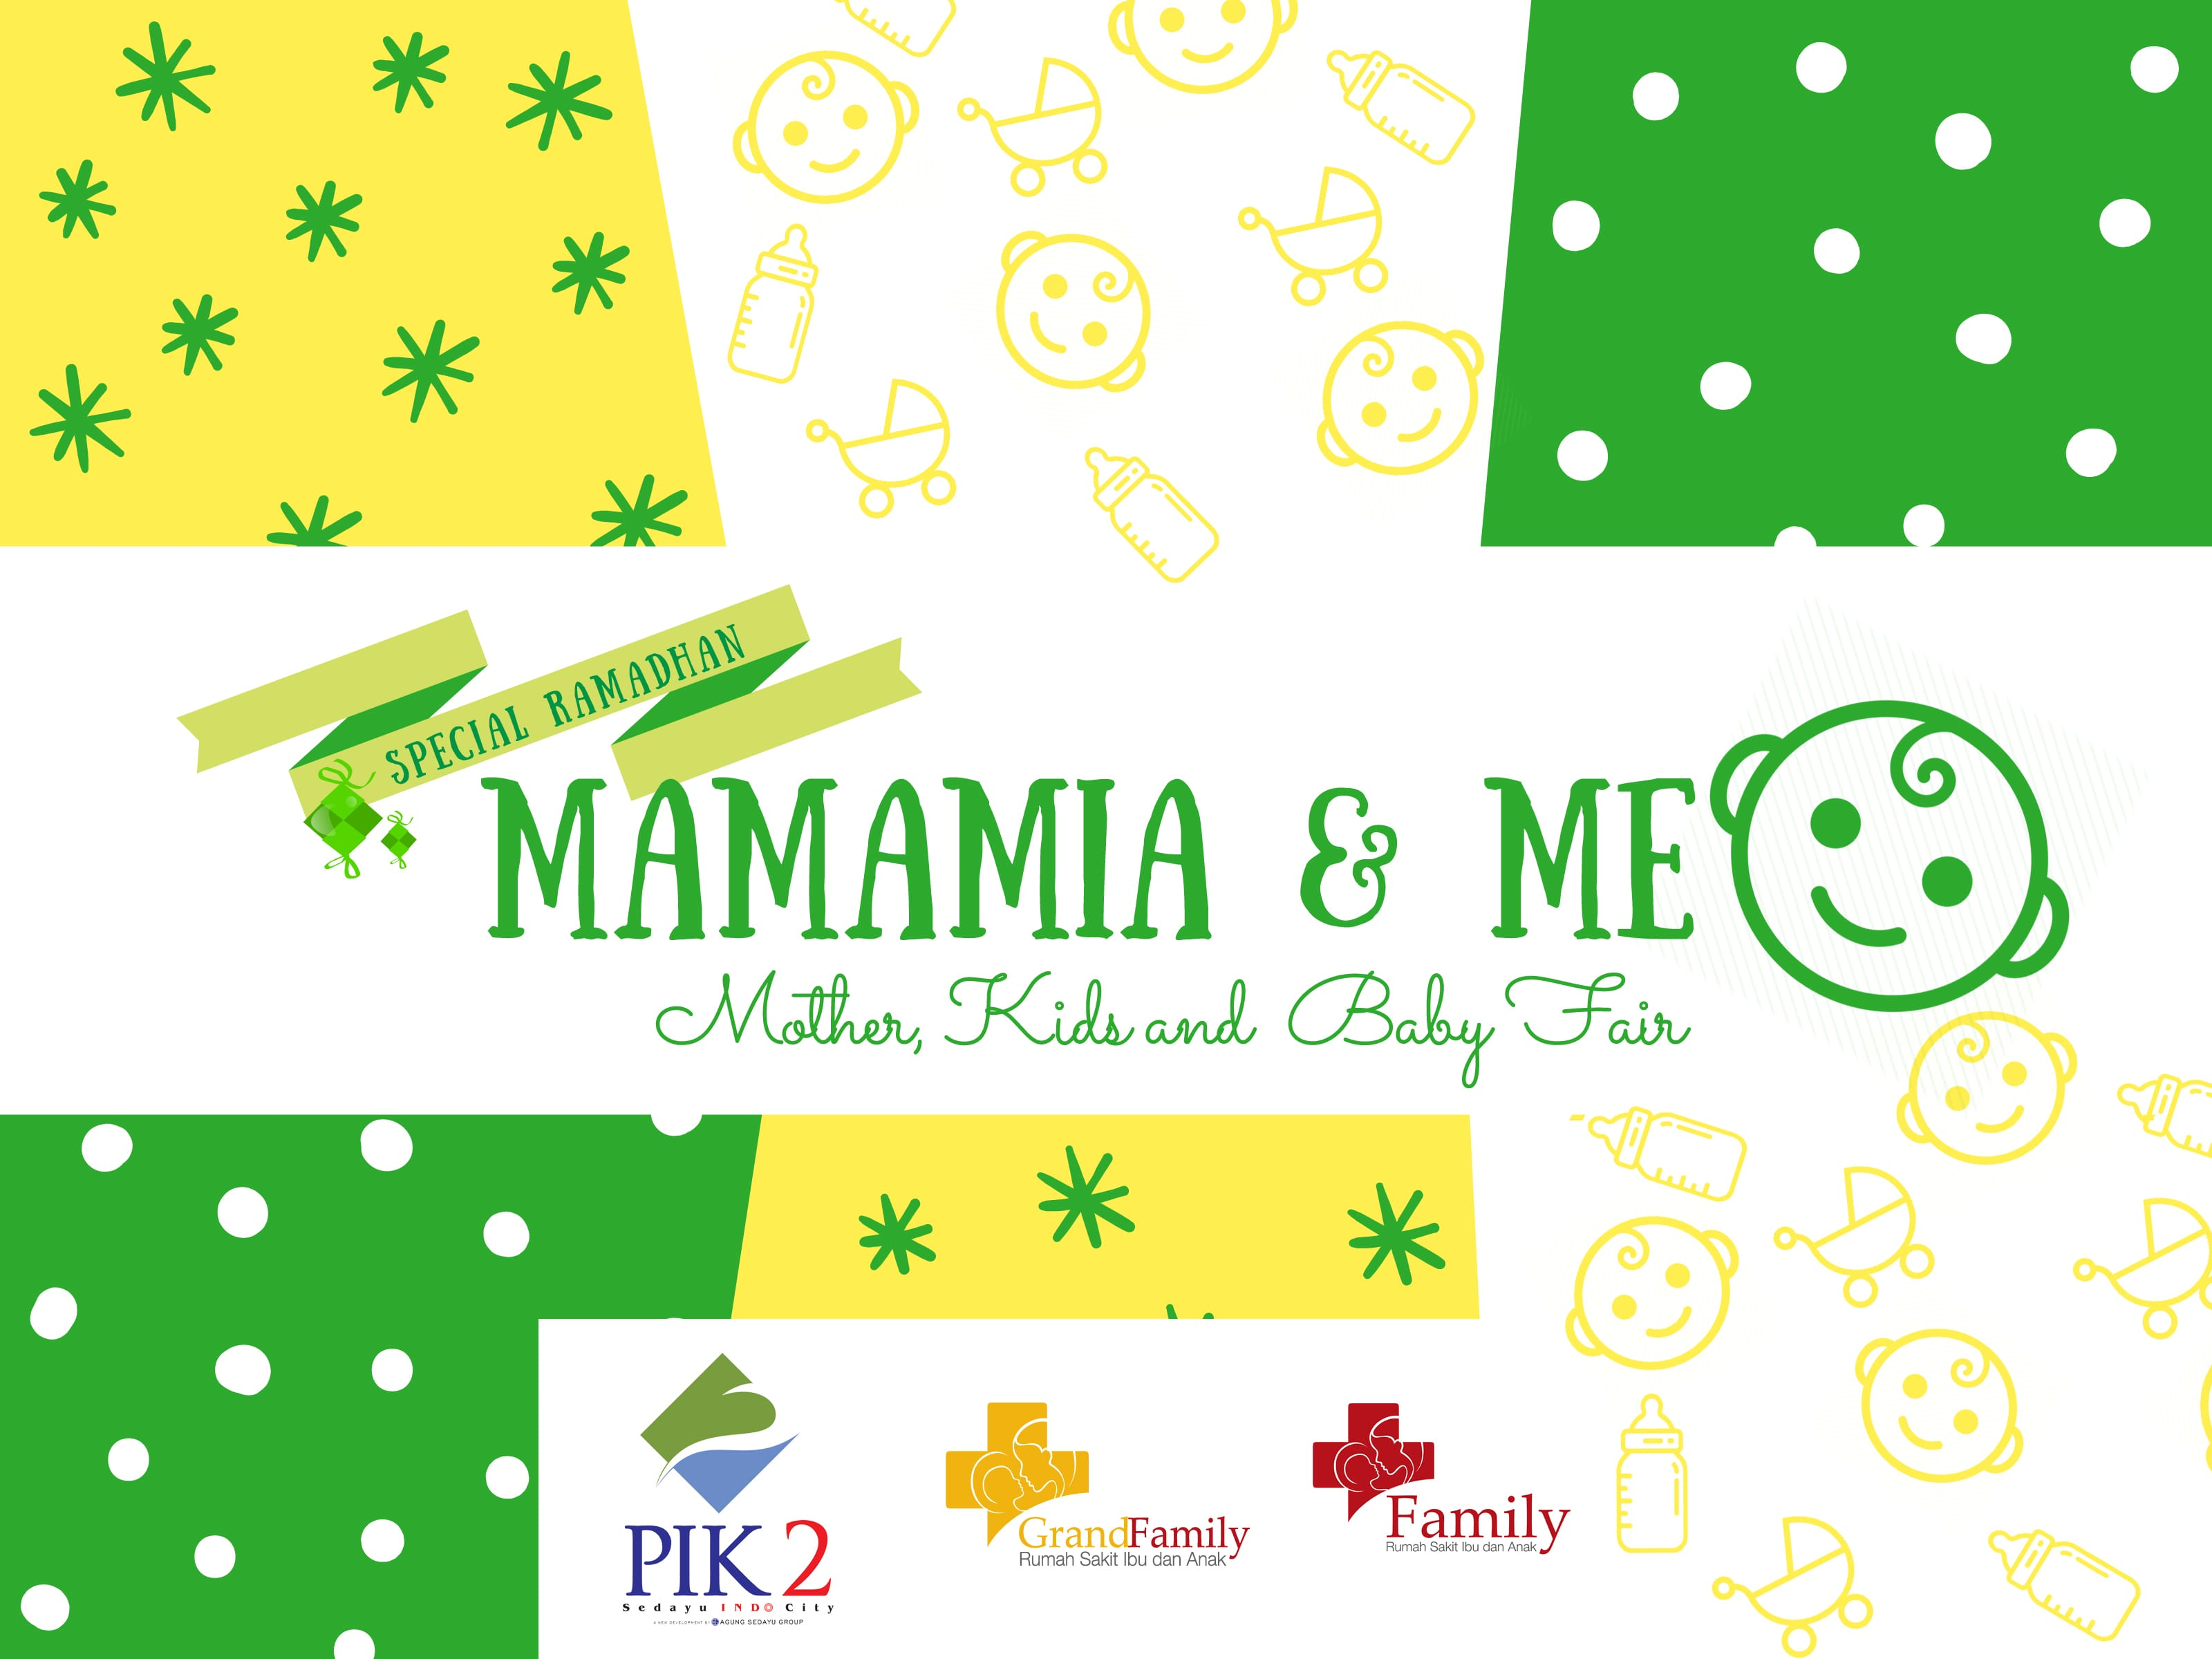 Pik2 Events - The excitement of Mamamia and Me Vol 2